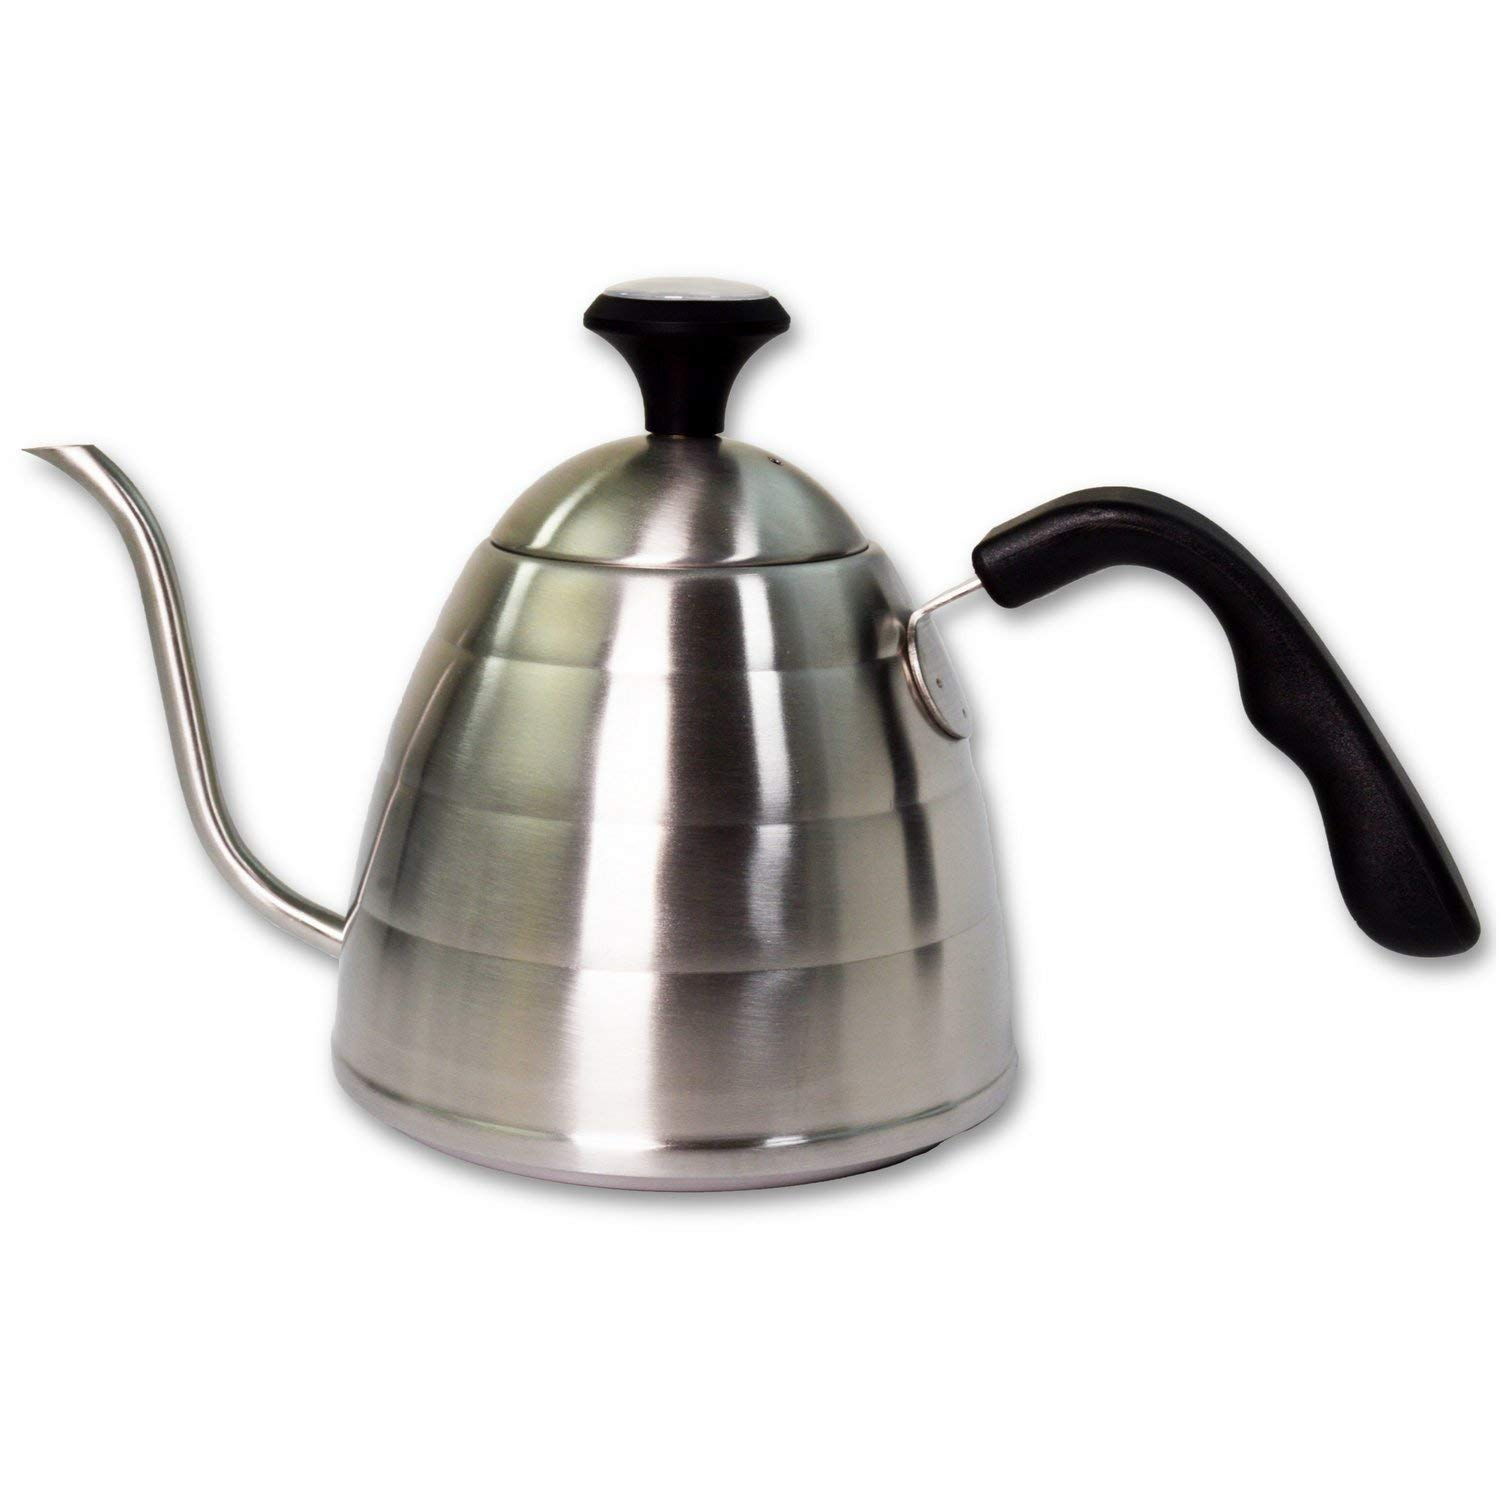 Coffee and Tea Pour Over Kettle with Thermometer 34 oz – Stovetop Long Spout Gooseneck Drip Kettle for Slow Pour Water – Heat Resistant Handle – Stainless Steel Brew Kettle for Making Coffee